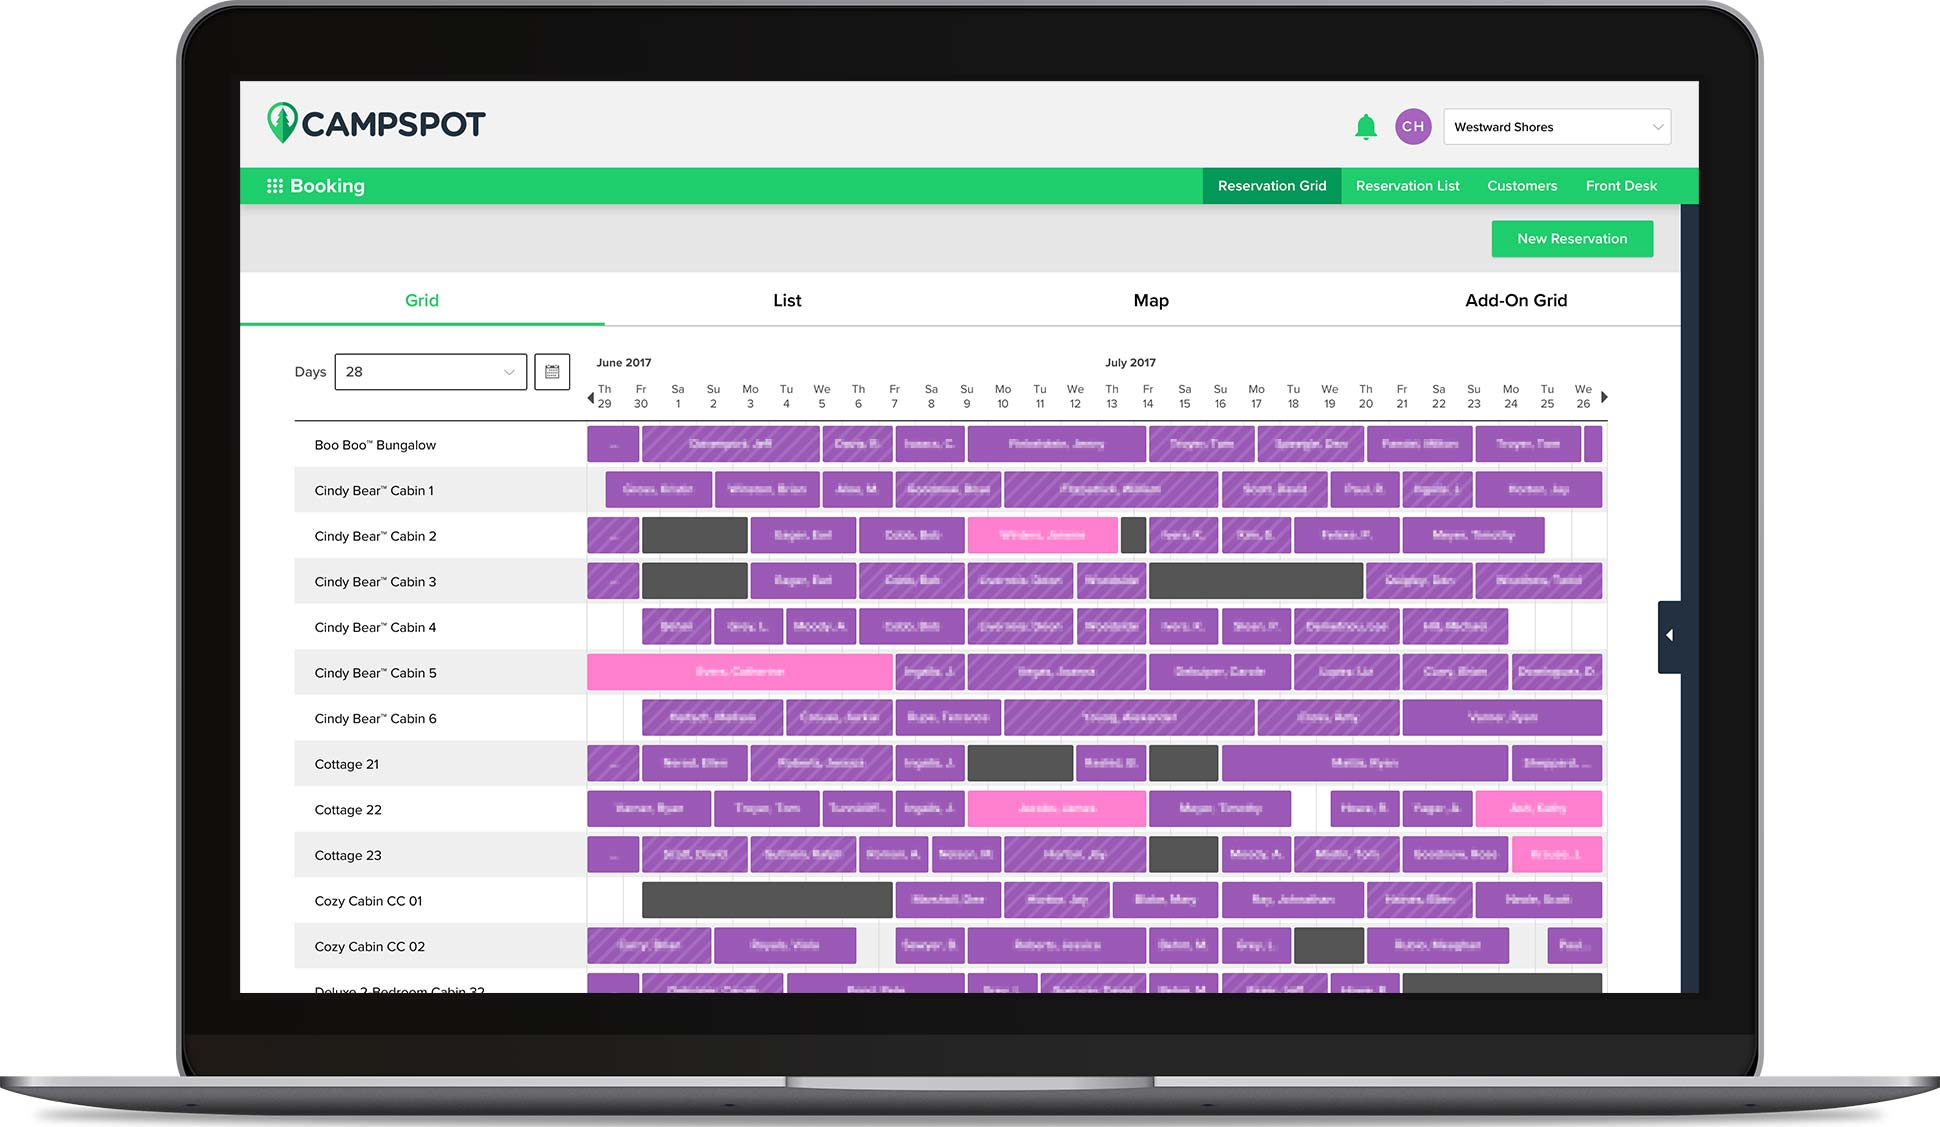 Campspot reservation software grid view.